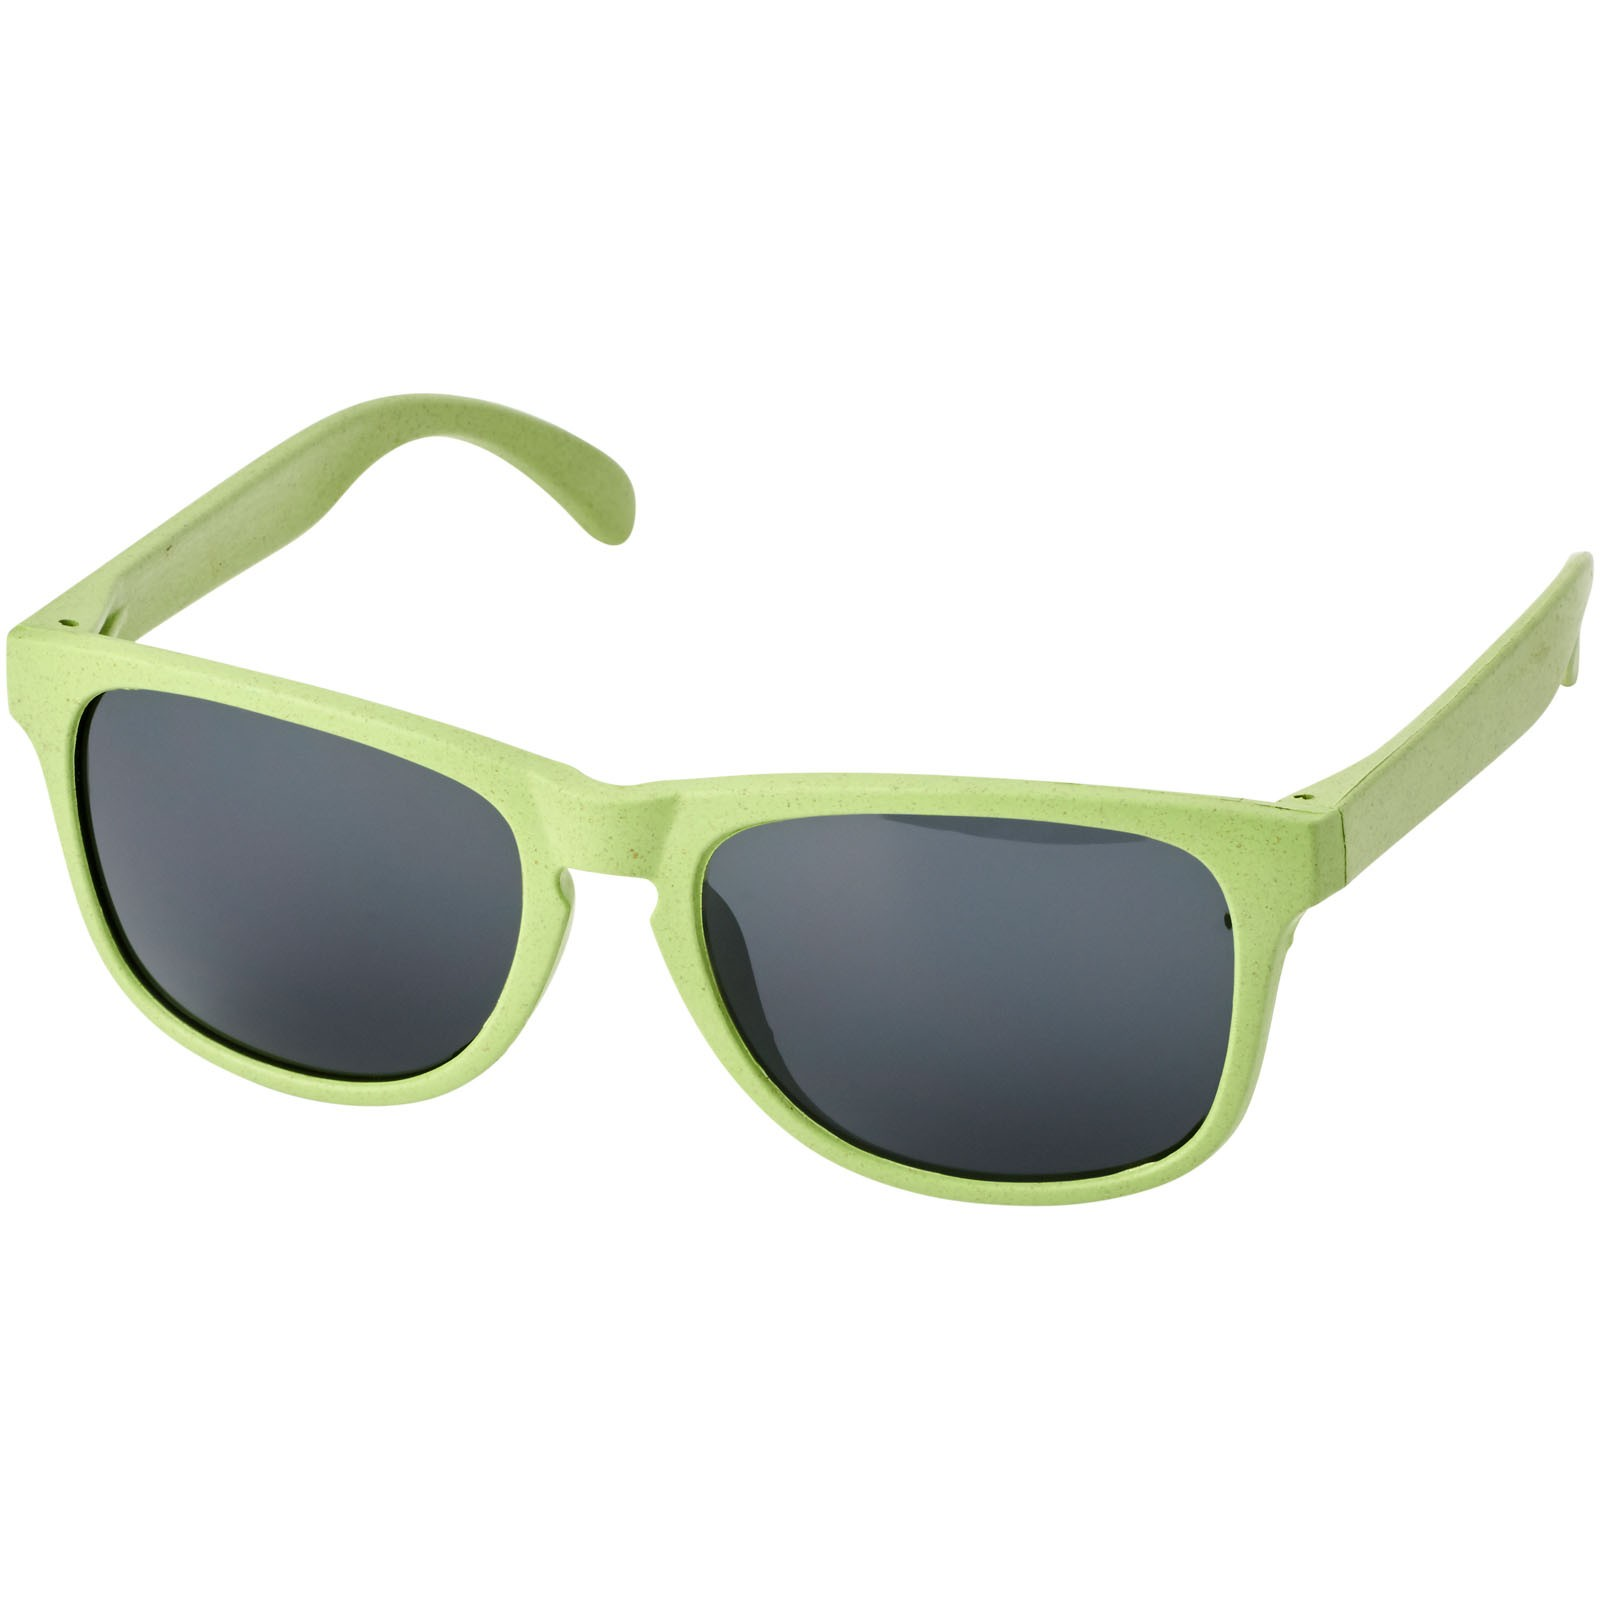 Rongo wheat straw sunglasses - Lime green